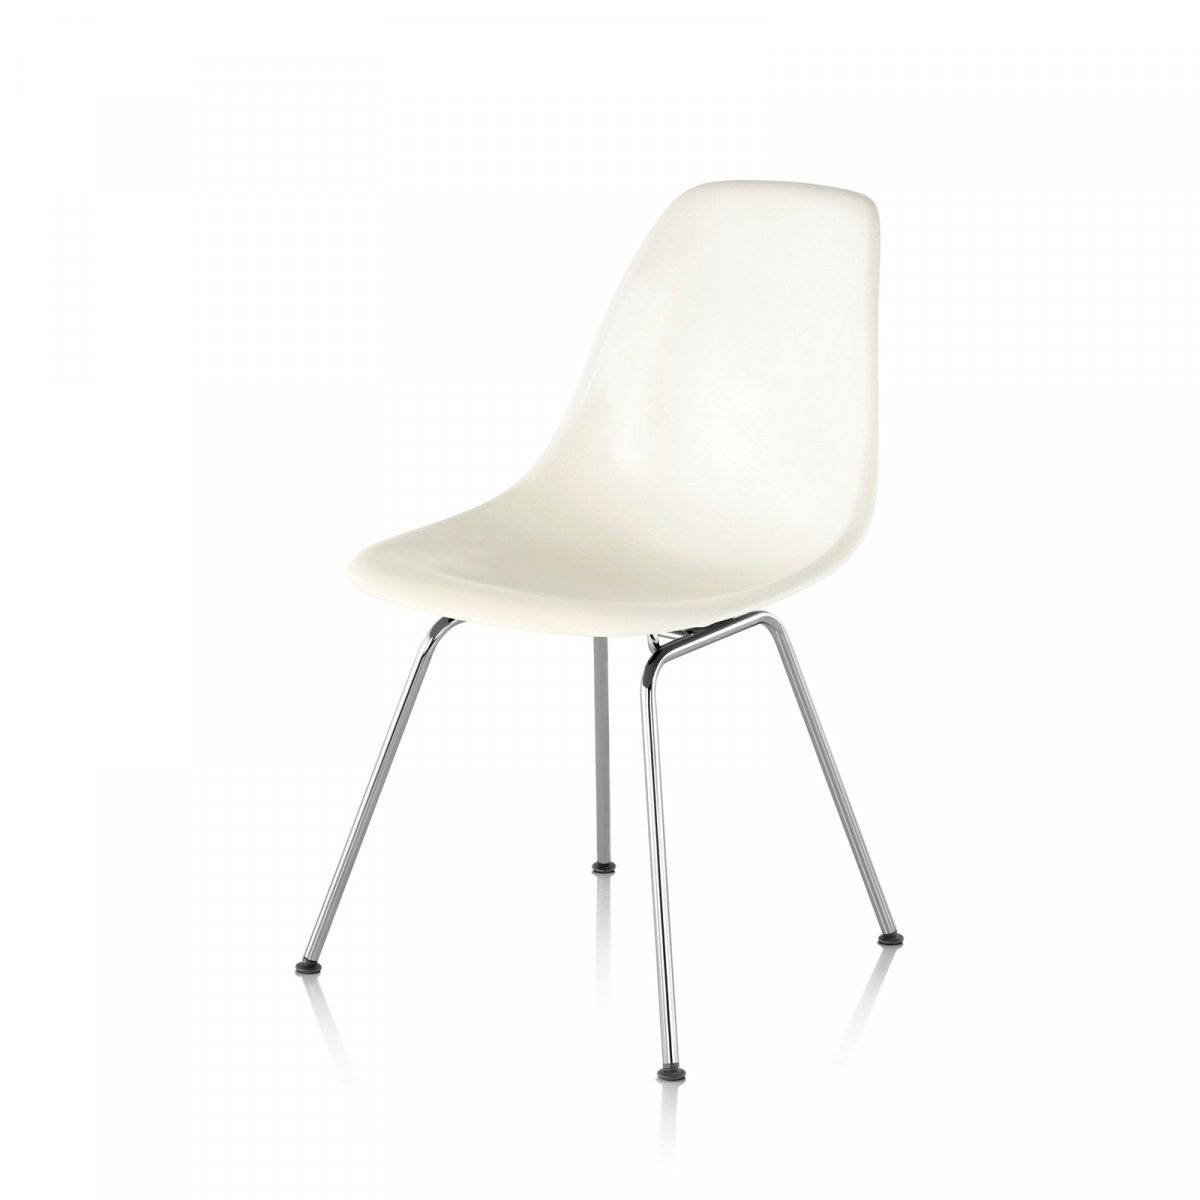 Eames Molded Plastic Side Chair 4-Leg Base, white.